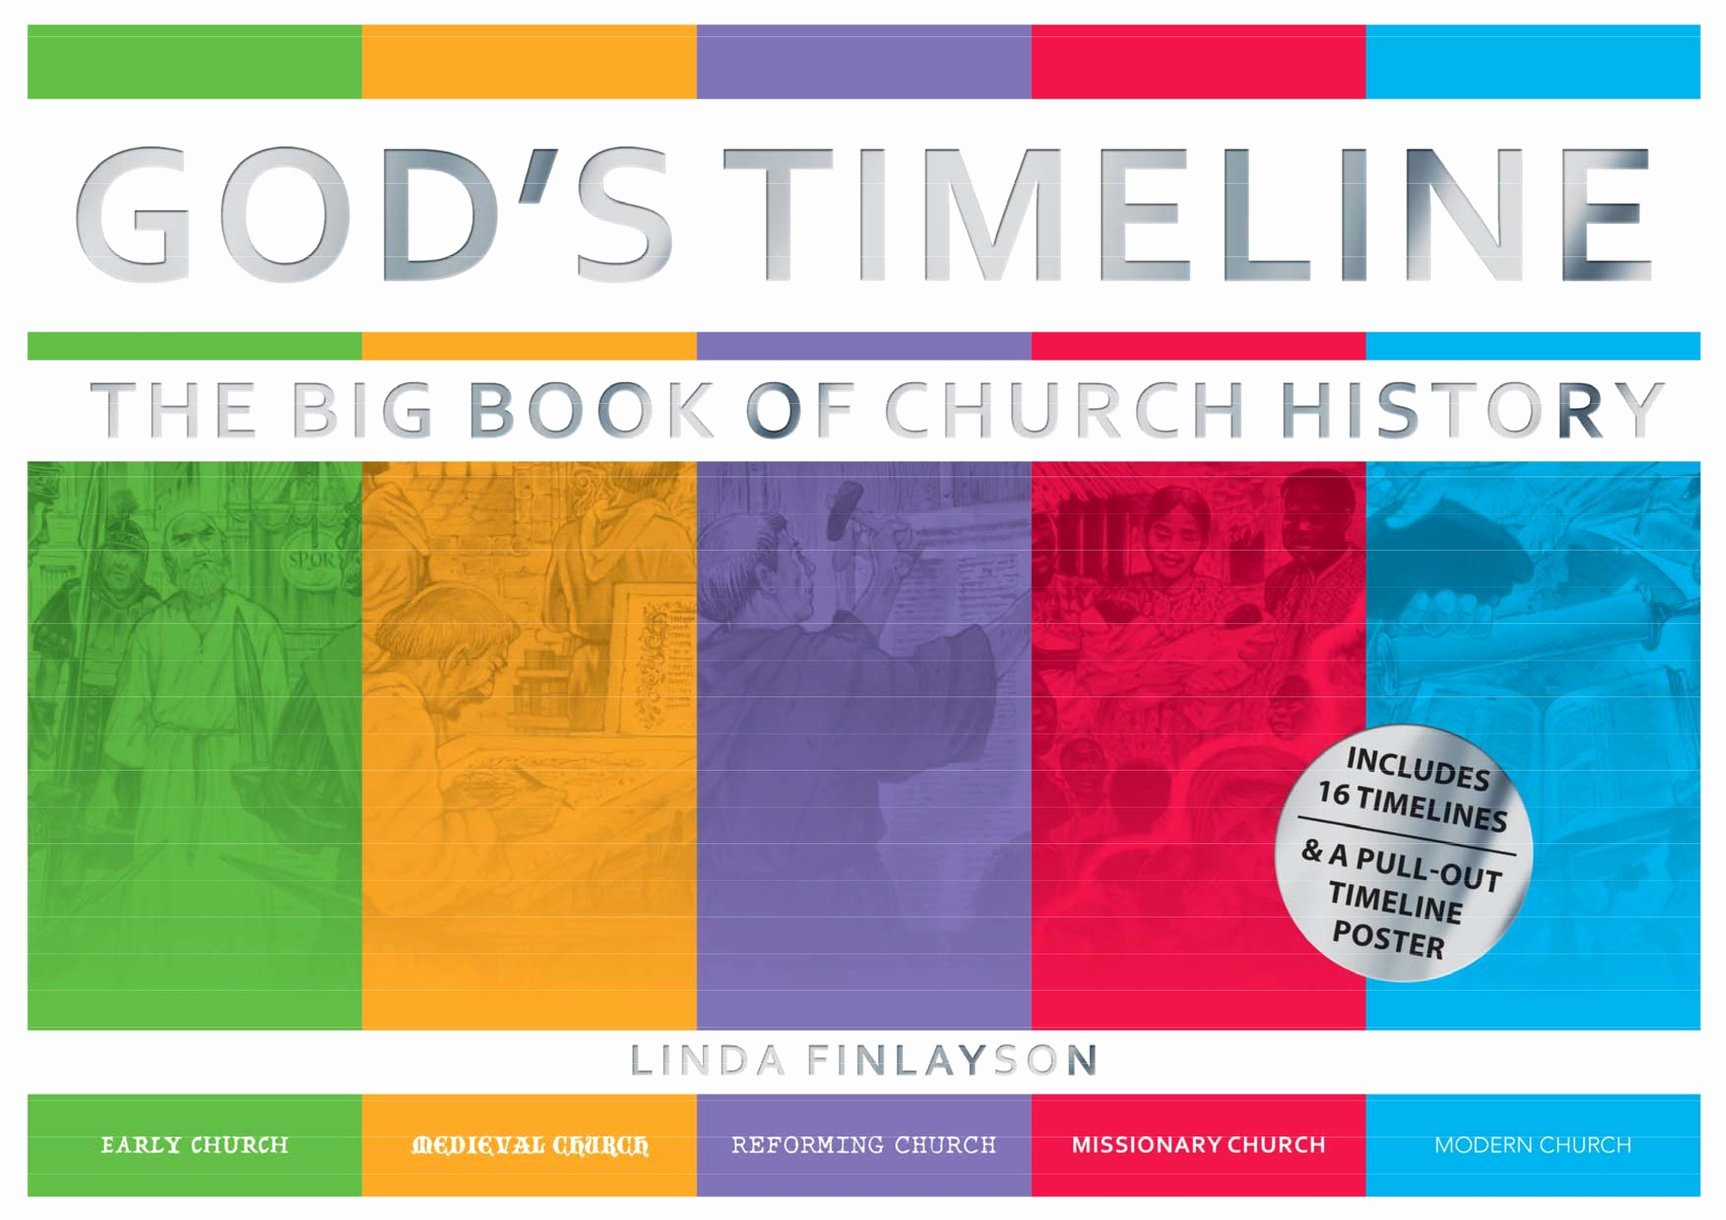 Church History Timeline Pdf Inspirational Books at A Glance God S Timeline the Big Book Of Church History by Linda Finlayson Books